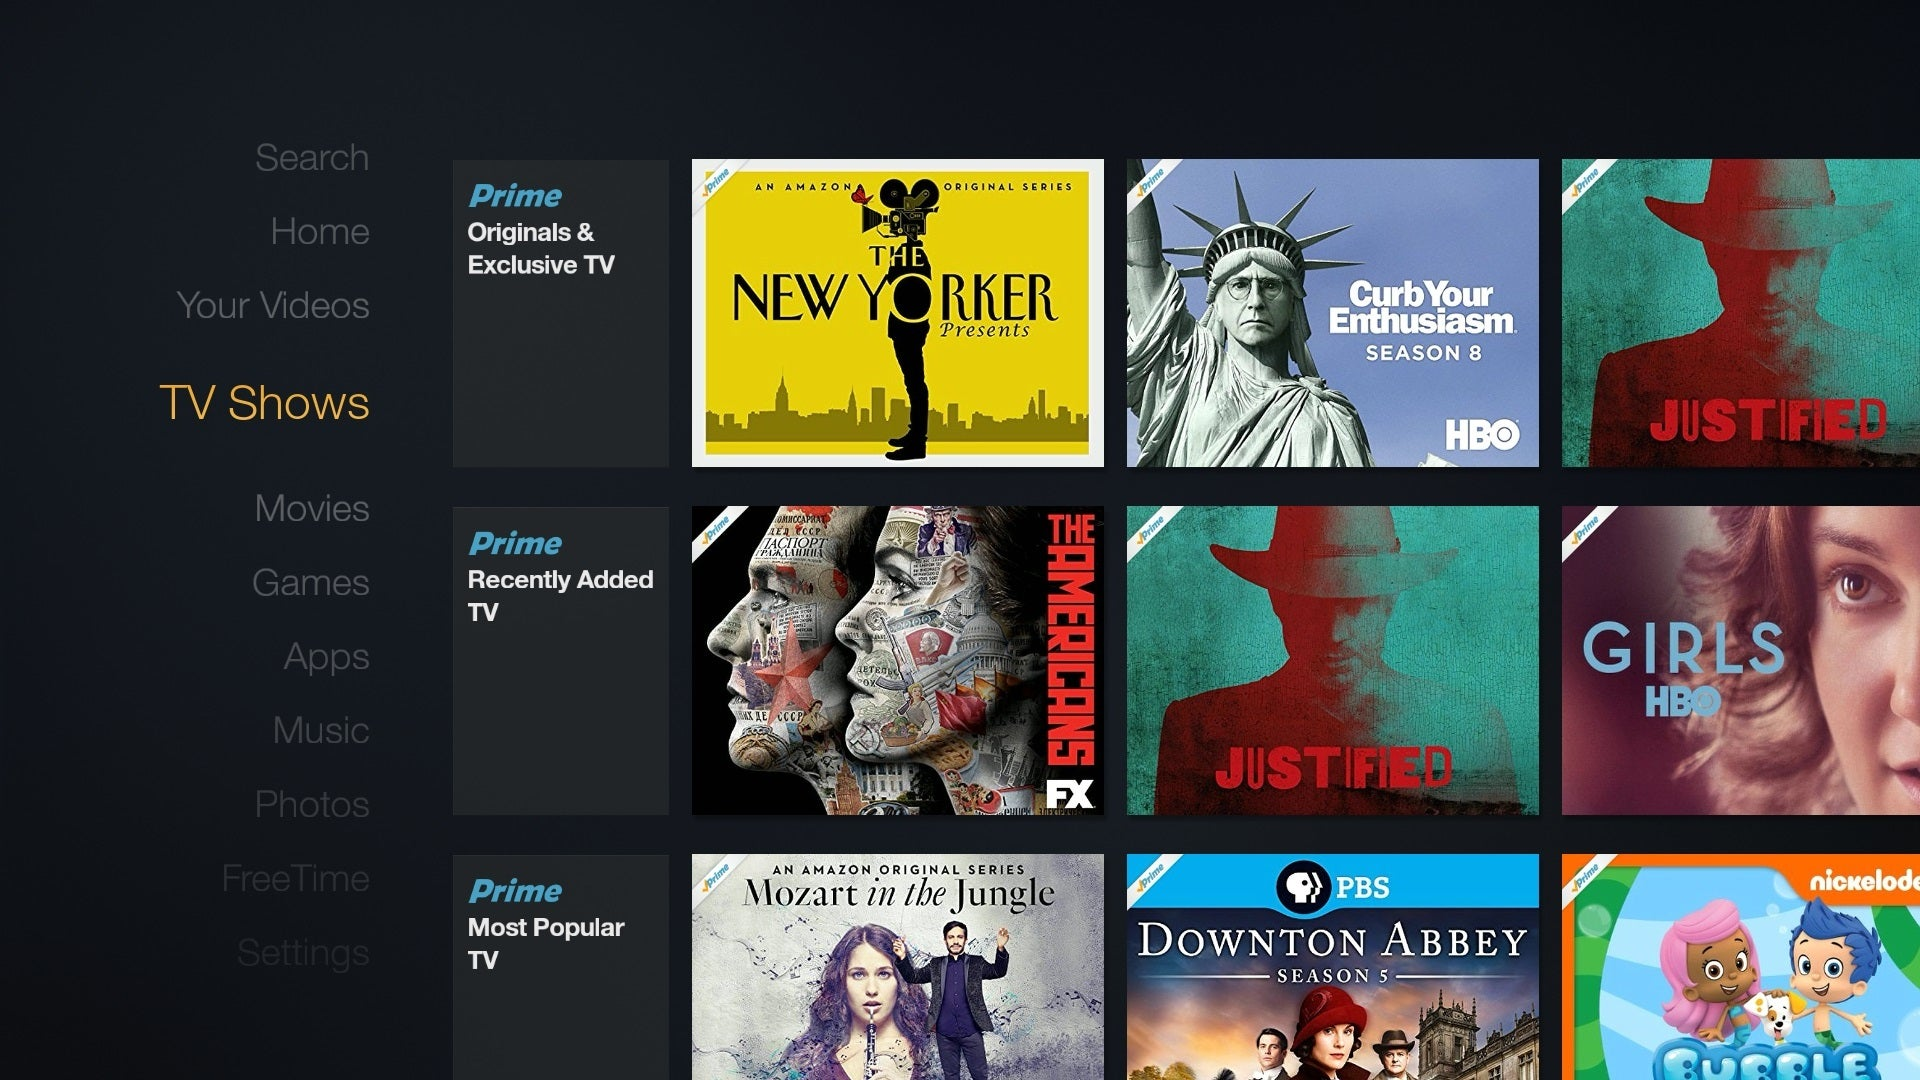 Amazon Prime Video Streaming Devices